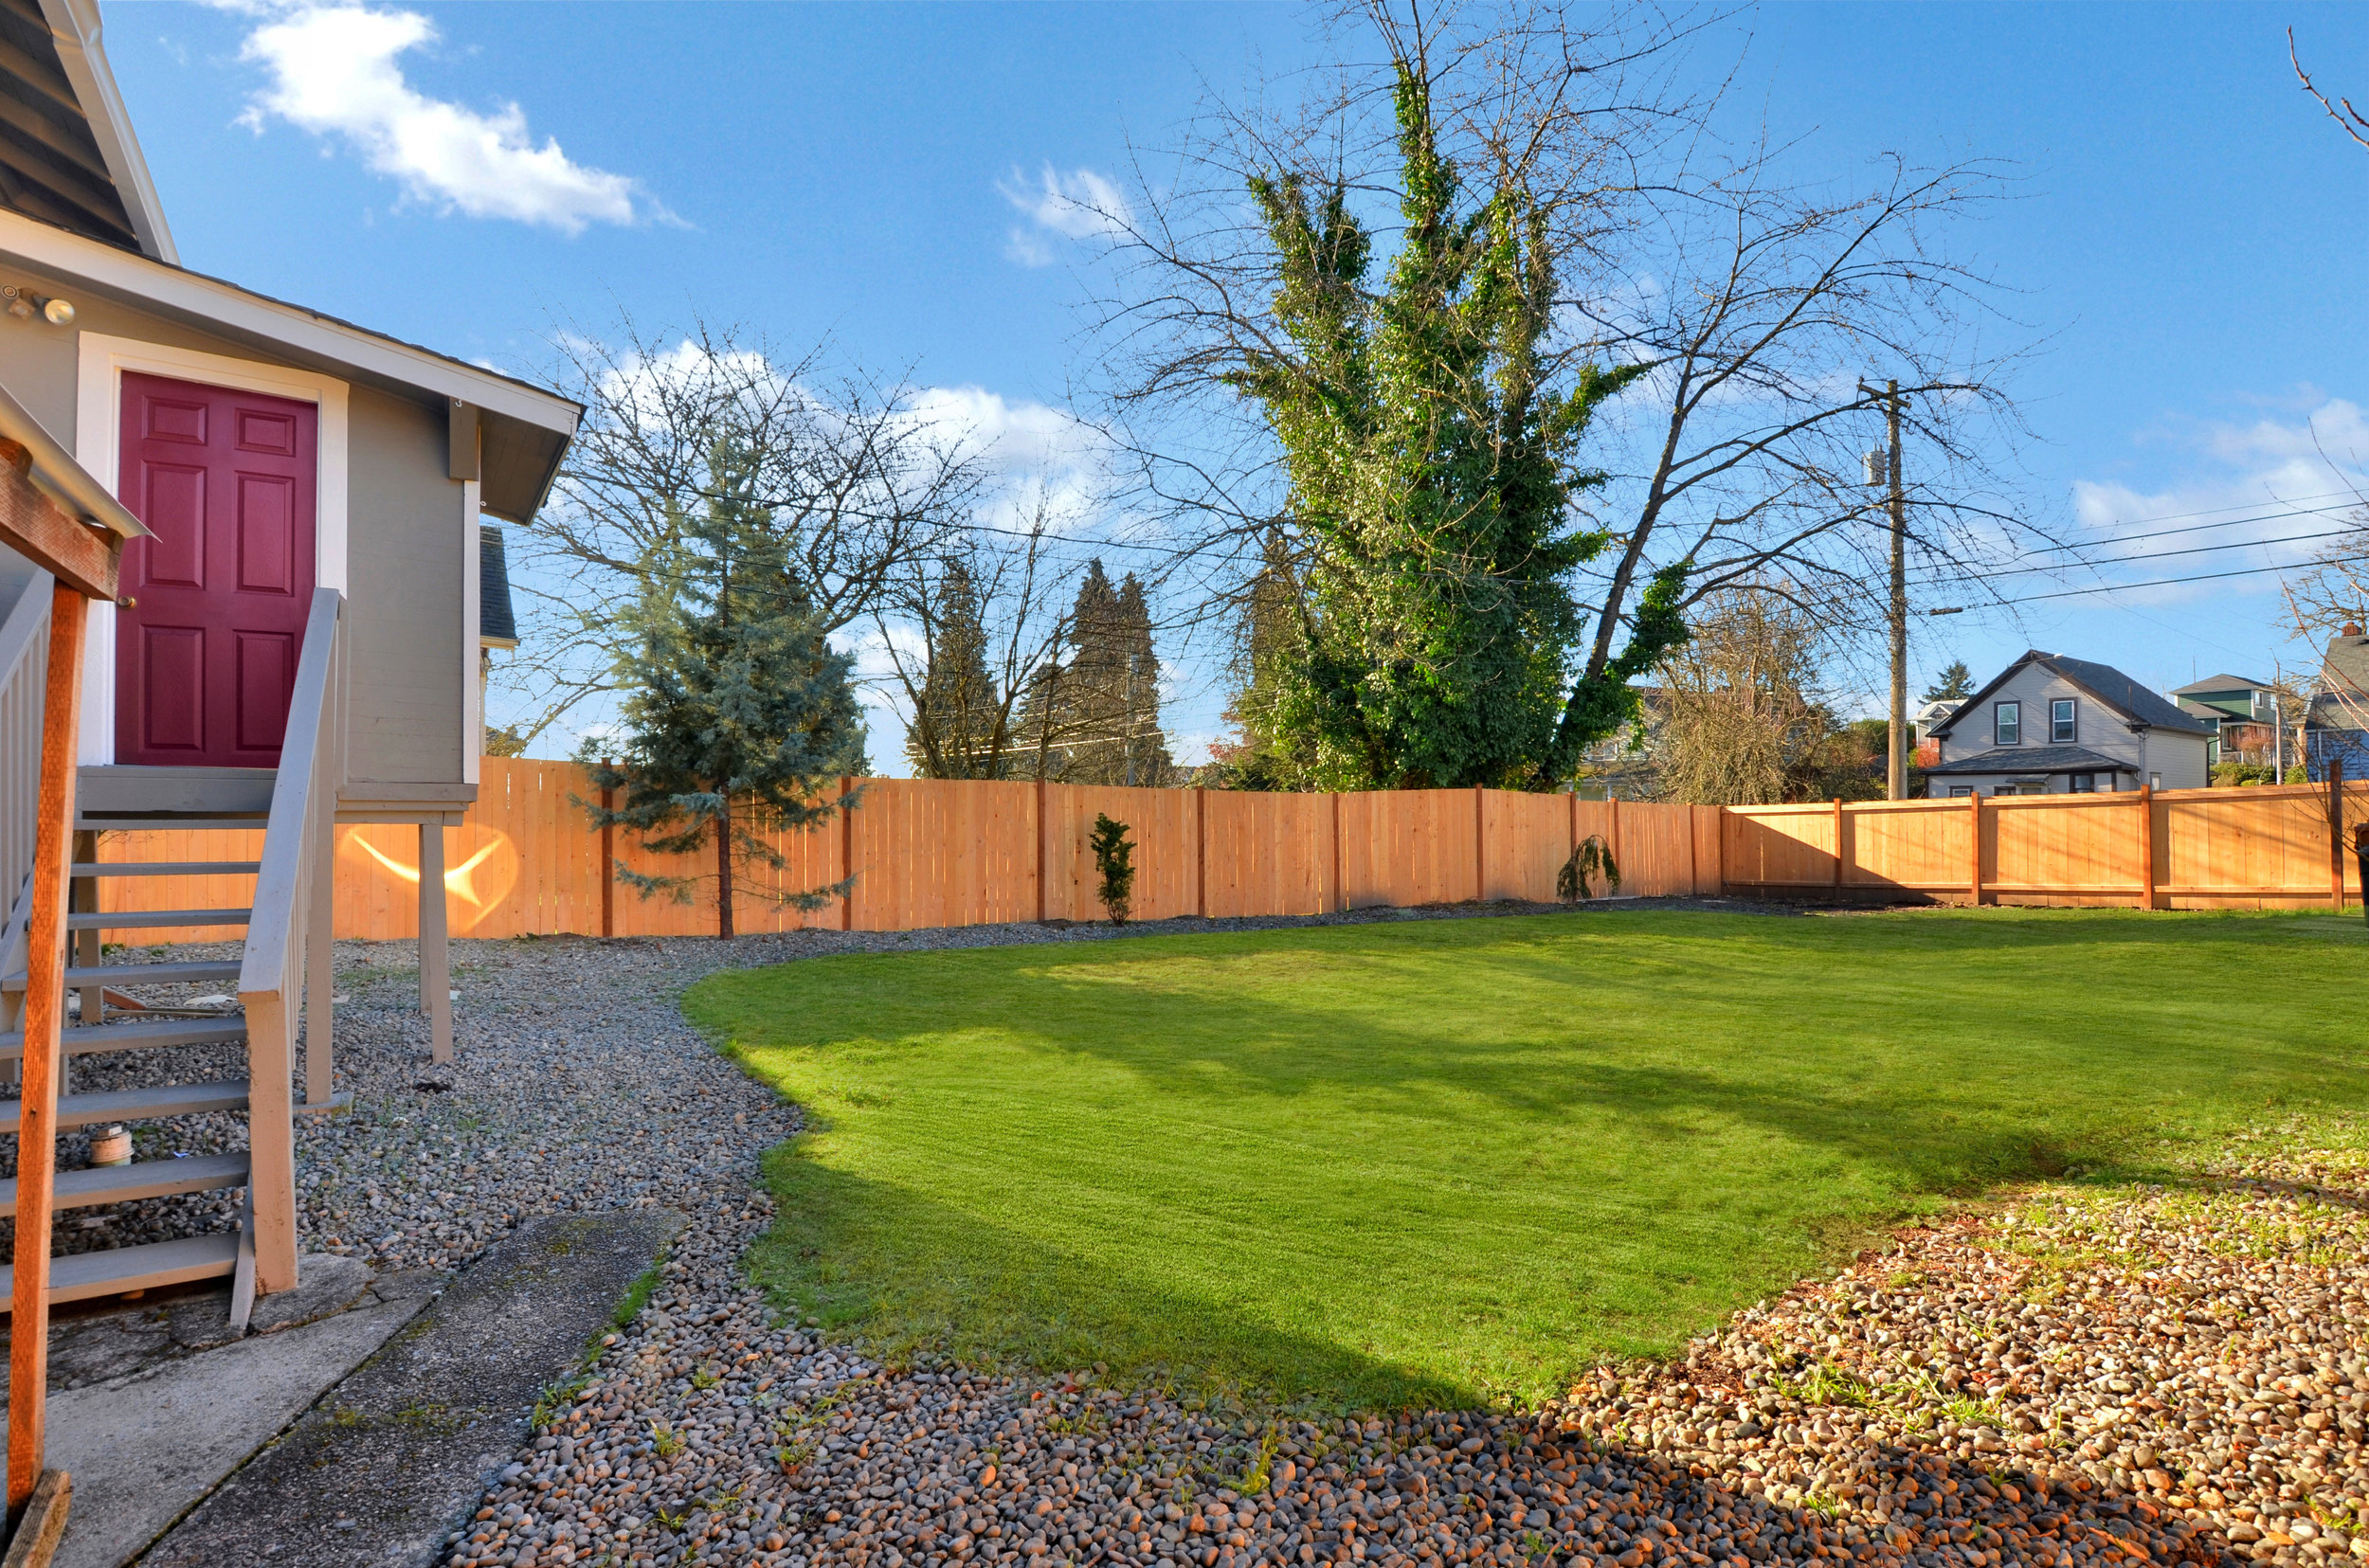 Brand new fencing fully encloses the back yard with its lawn, trees, and so much room for running and playing, or gardening.